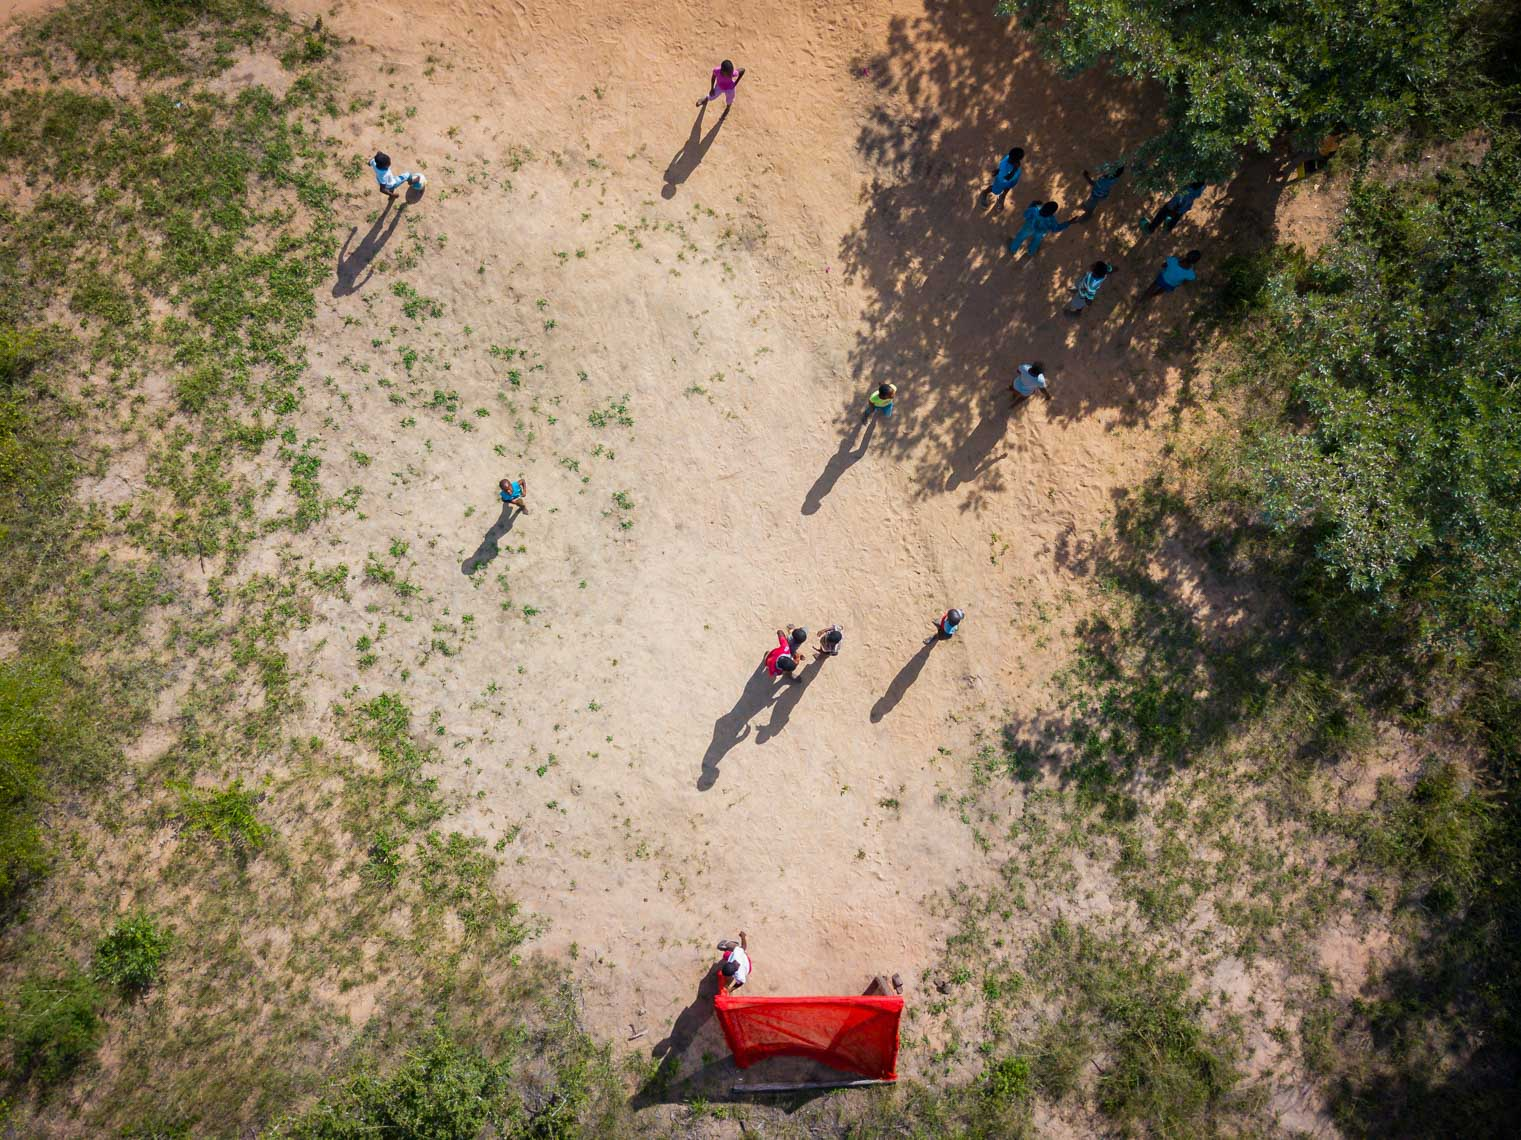 Arial view of children playing soccer at Nourish eco village in South Africa